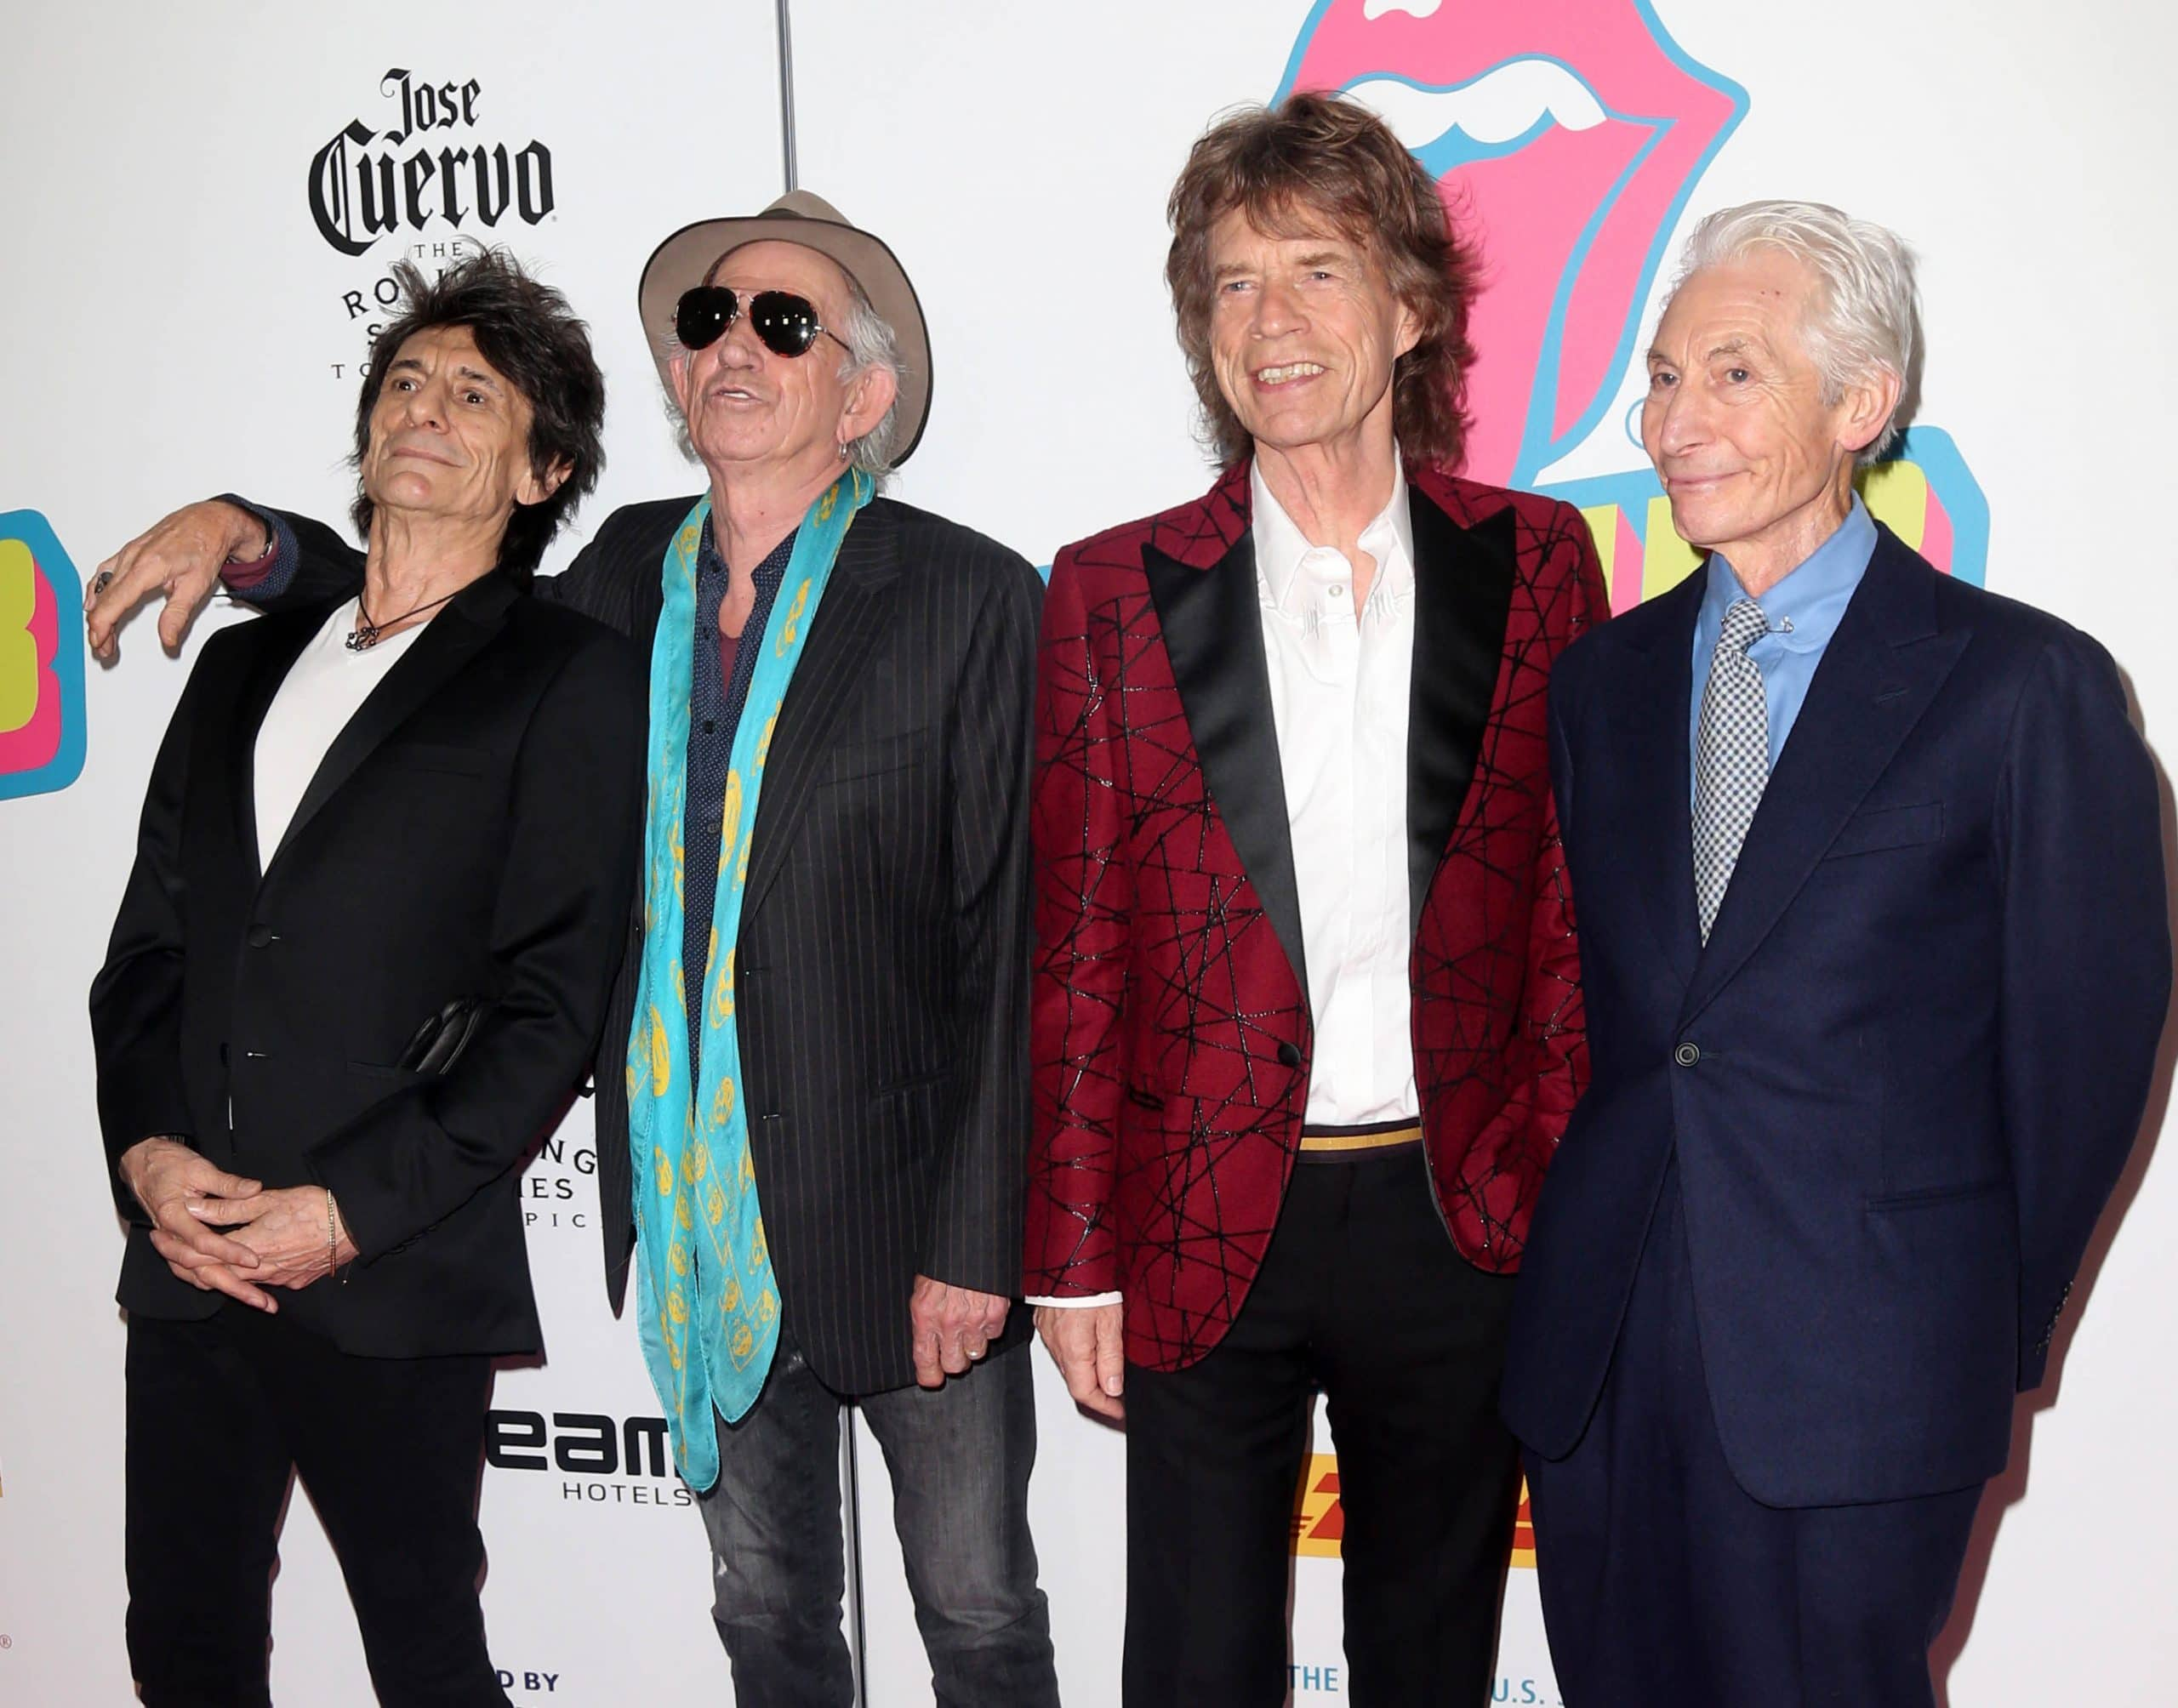 The Rolling Stones (Ronnie Wood, Keith Richards, Mick Jaggers and Charlie Watts)